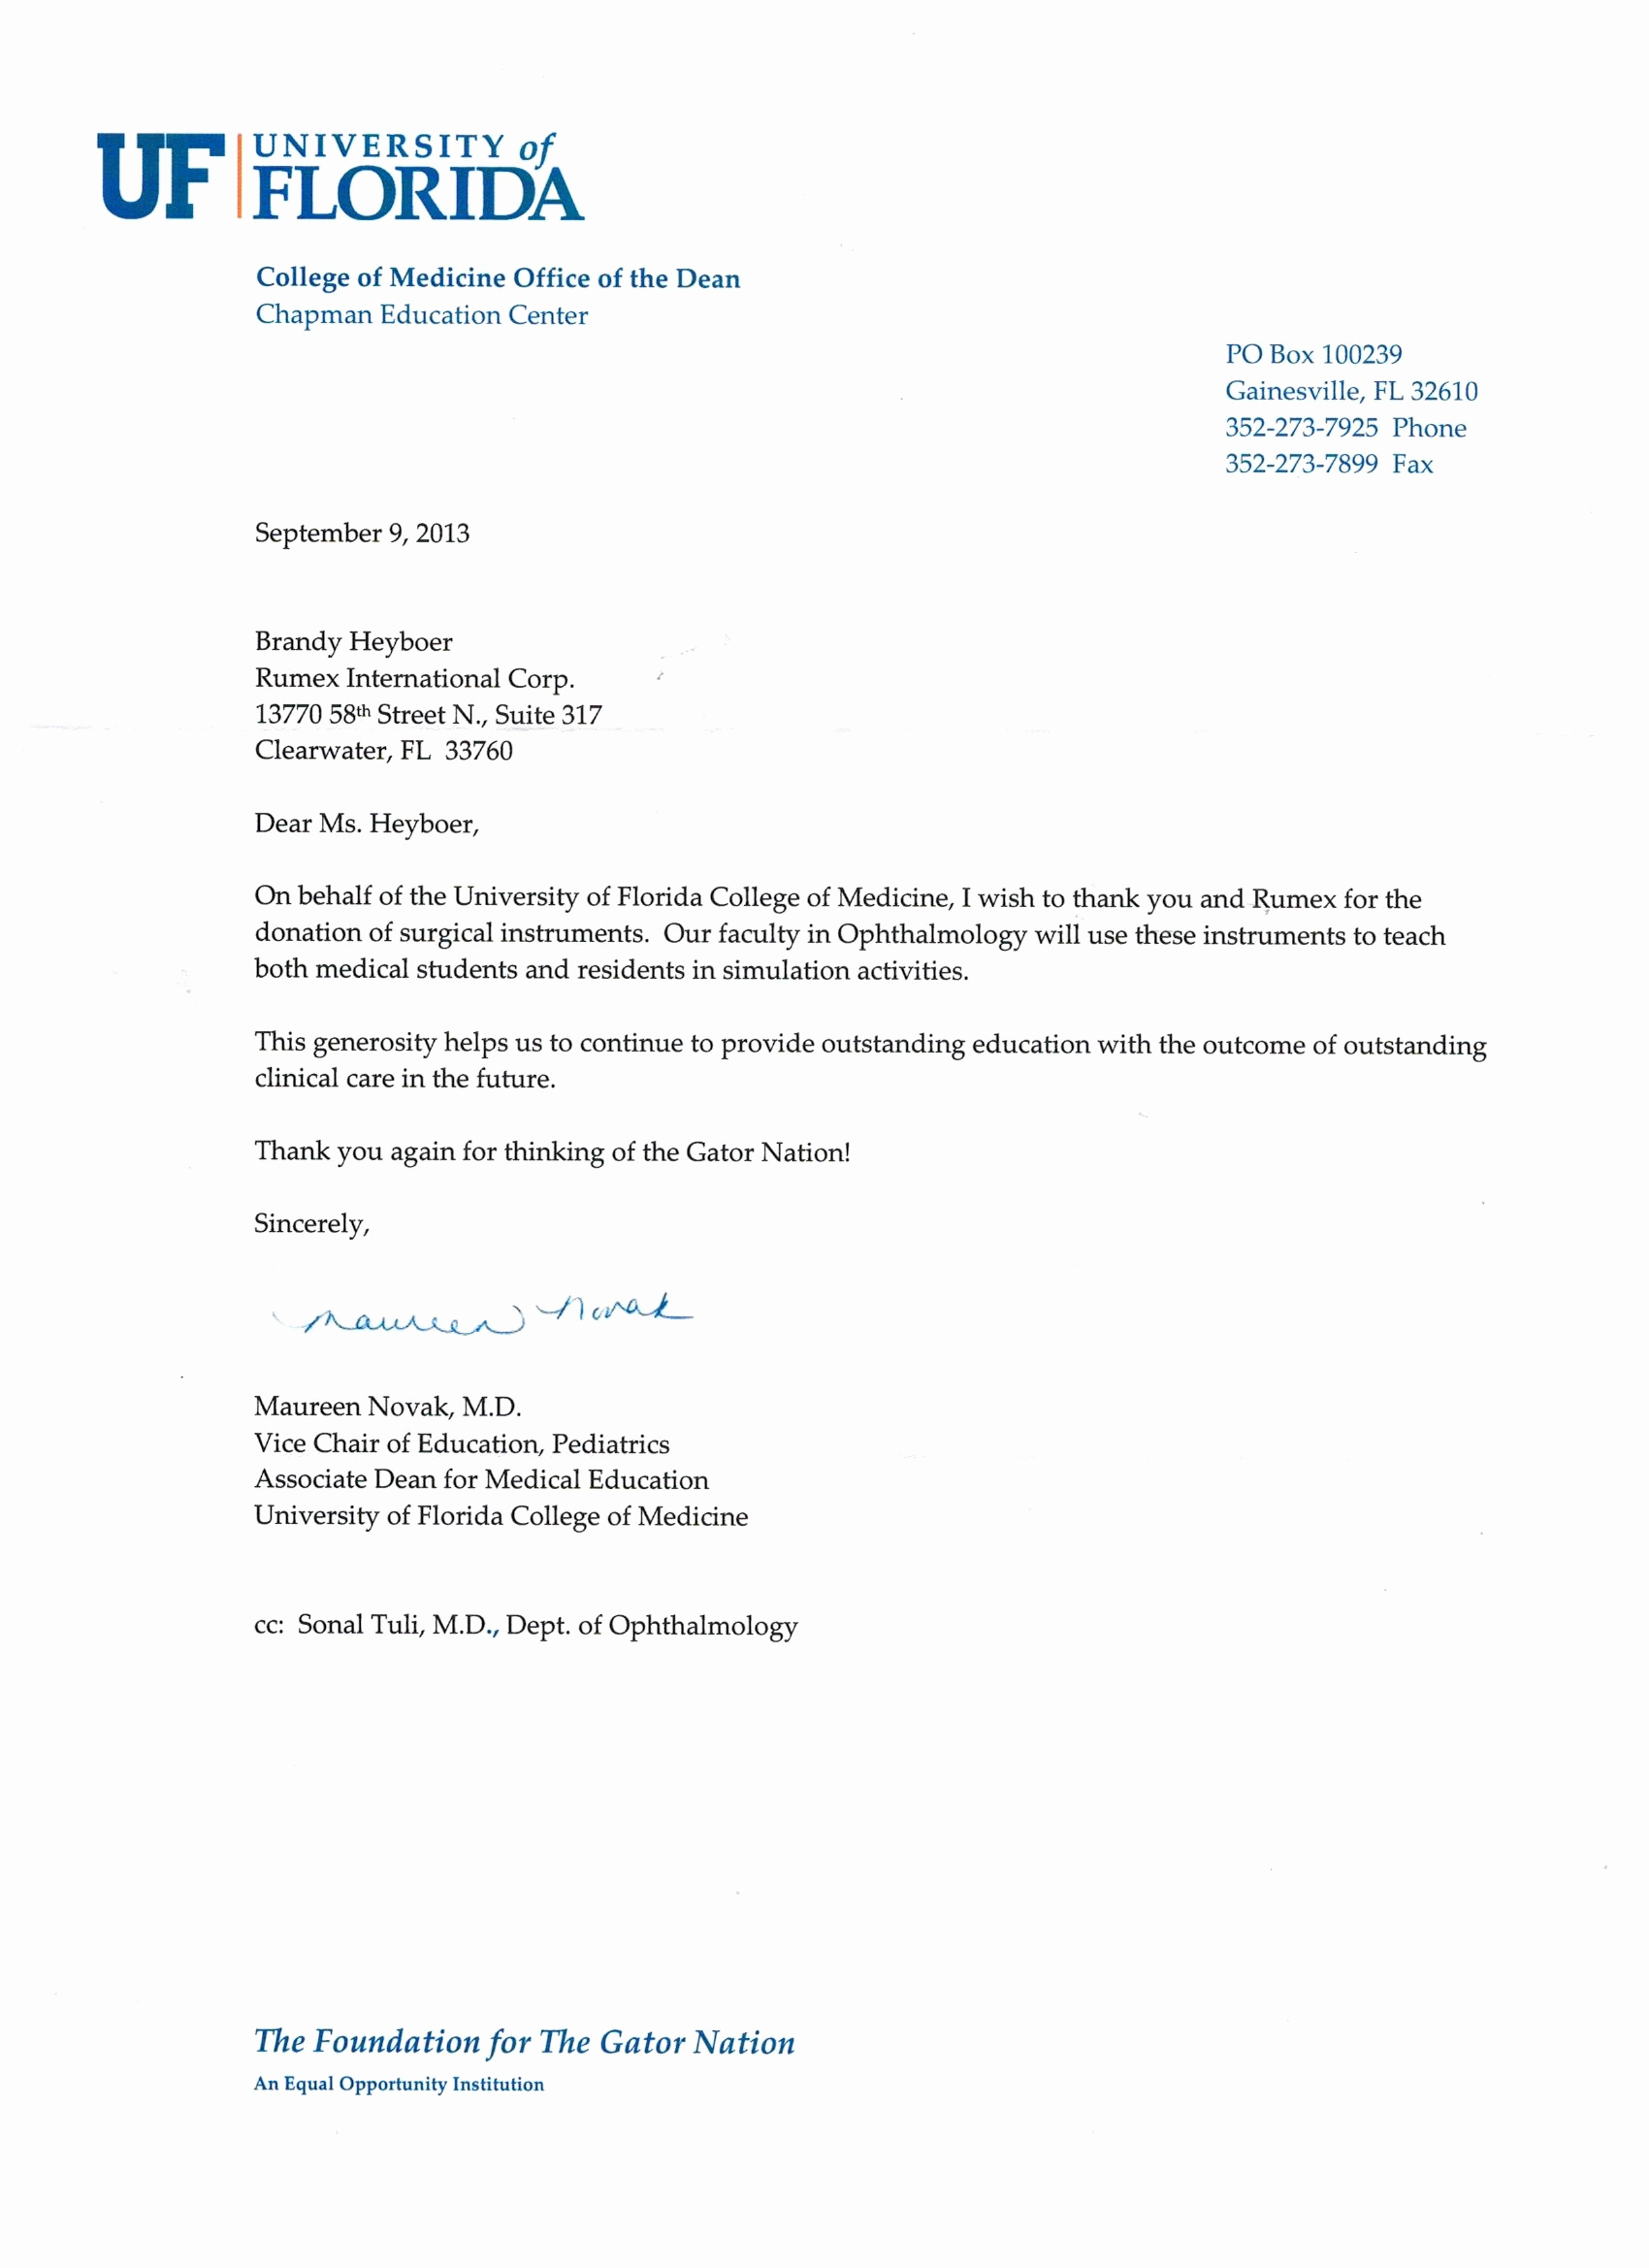 Thank You for Donation Letter Awesome Rumex Donations